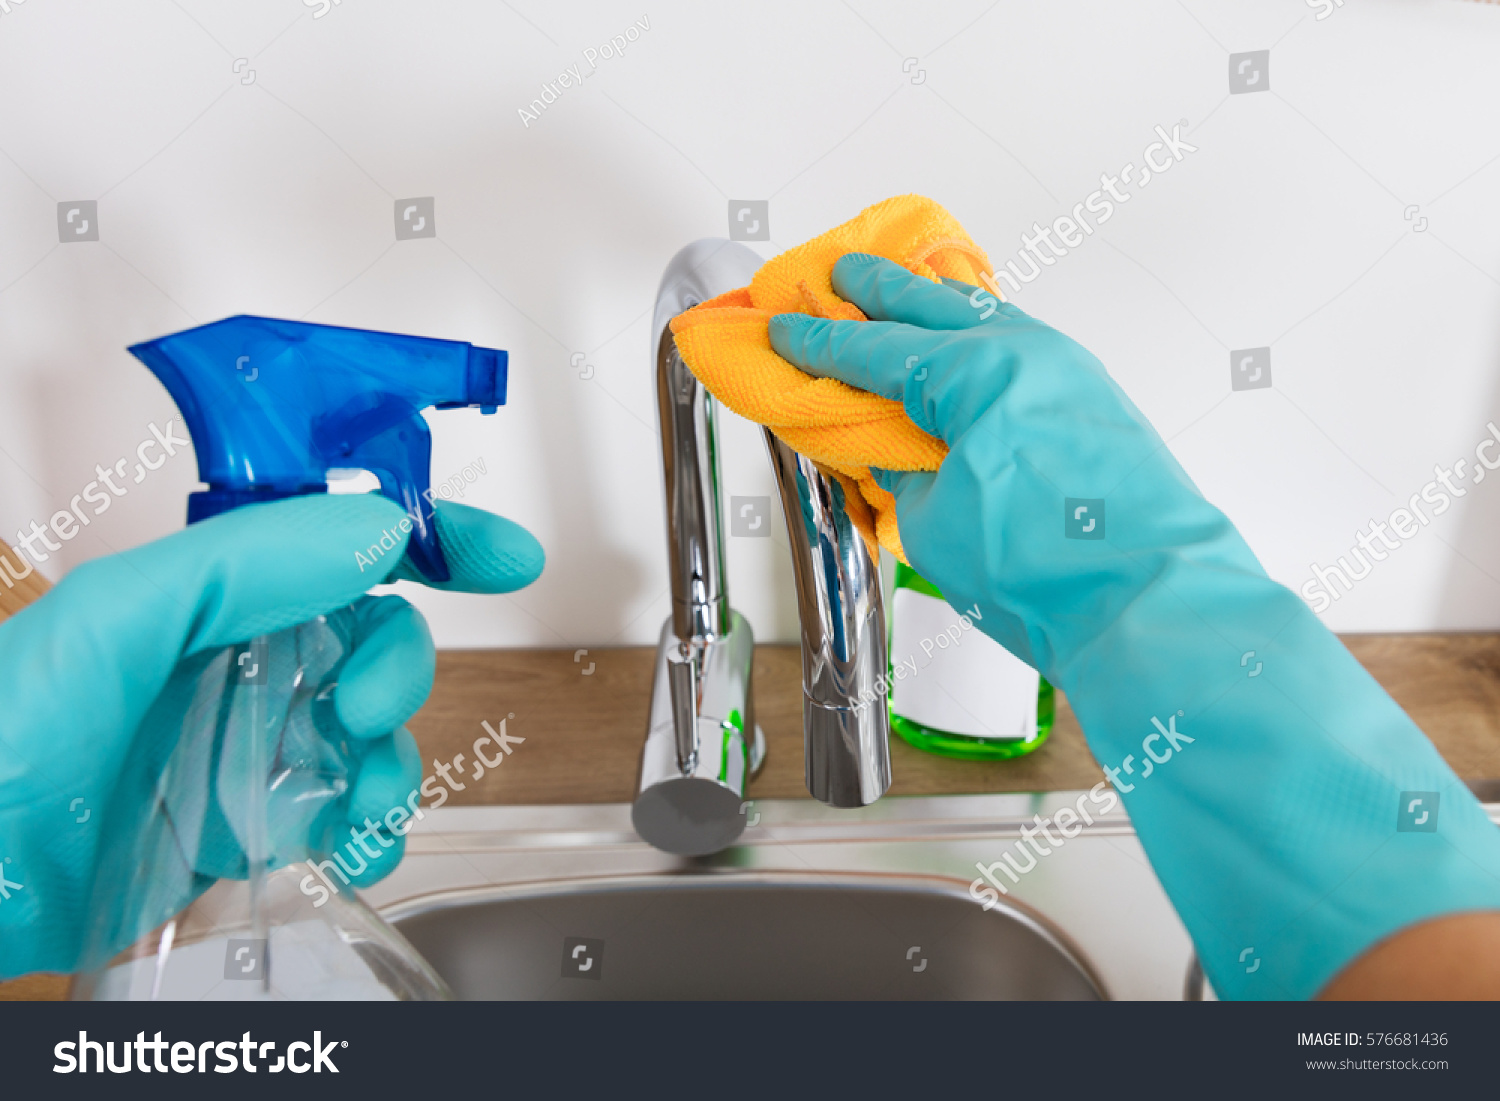 Person Cleaning Sink Tap Kitchen Cloth Stock Photo (Royalty Free ...